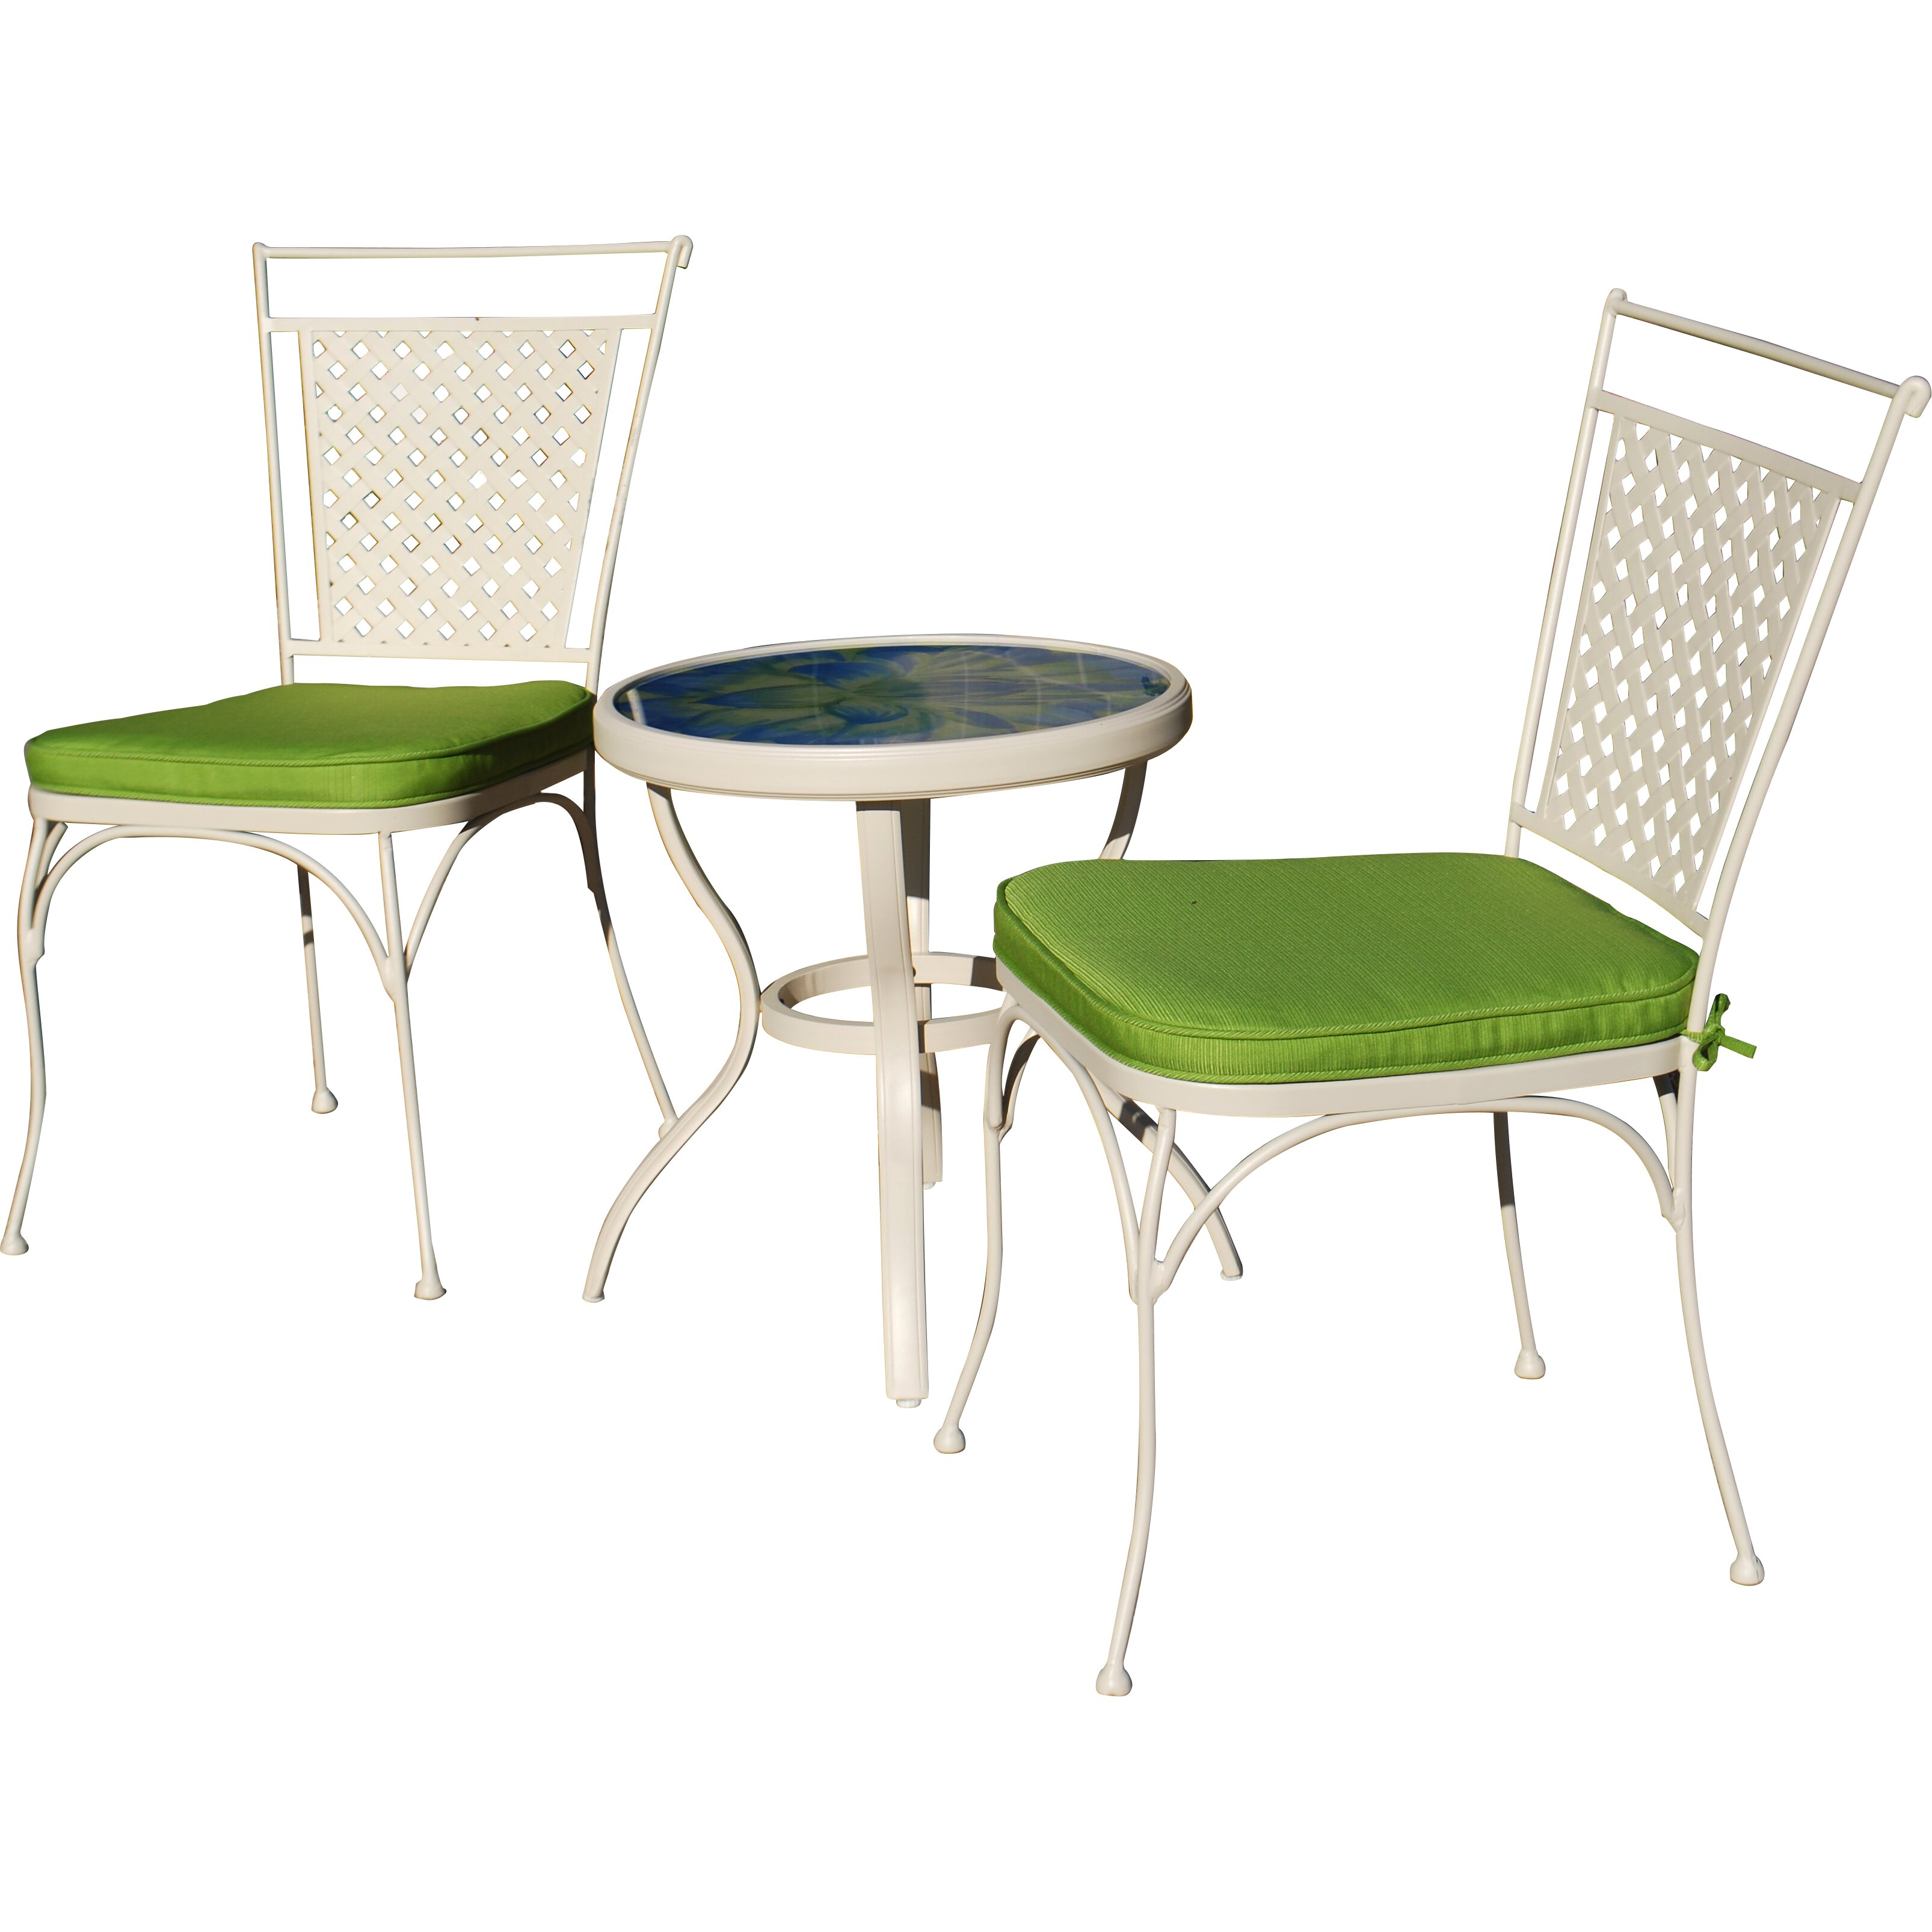 Outdoor Innovation Artisan 3 Piece Bistro Set With Cushions Reviews W